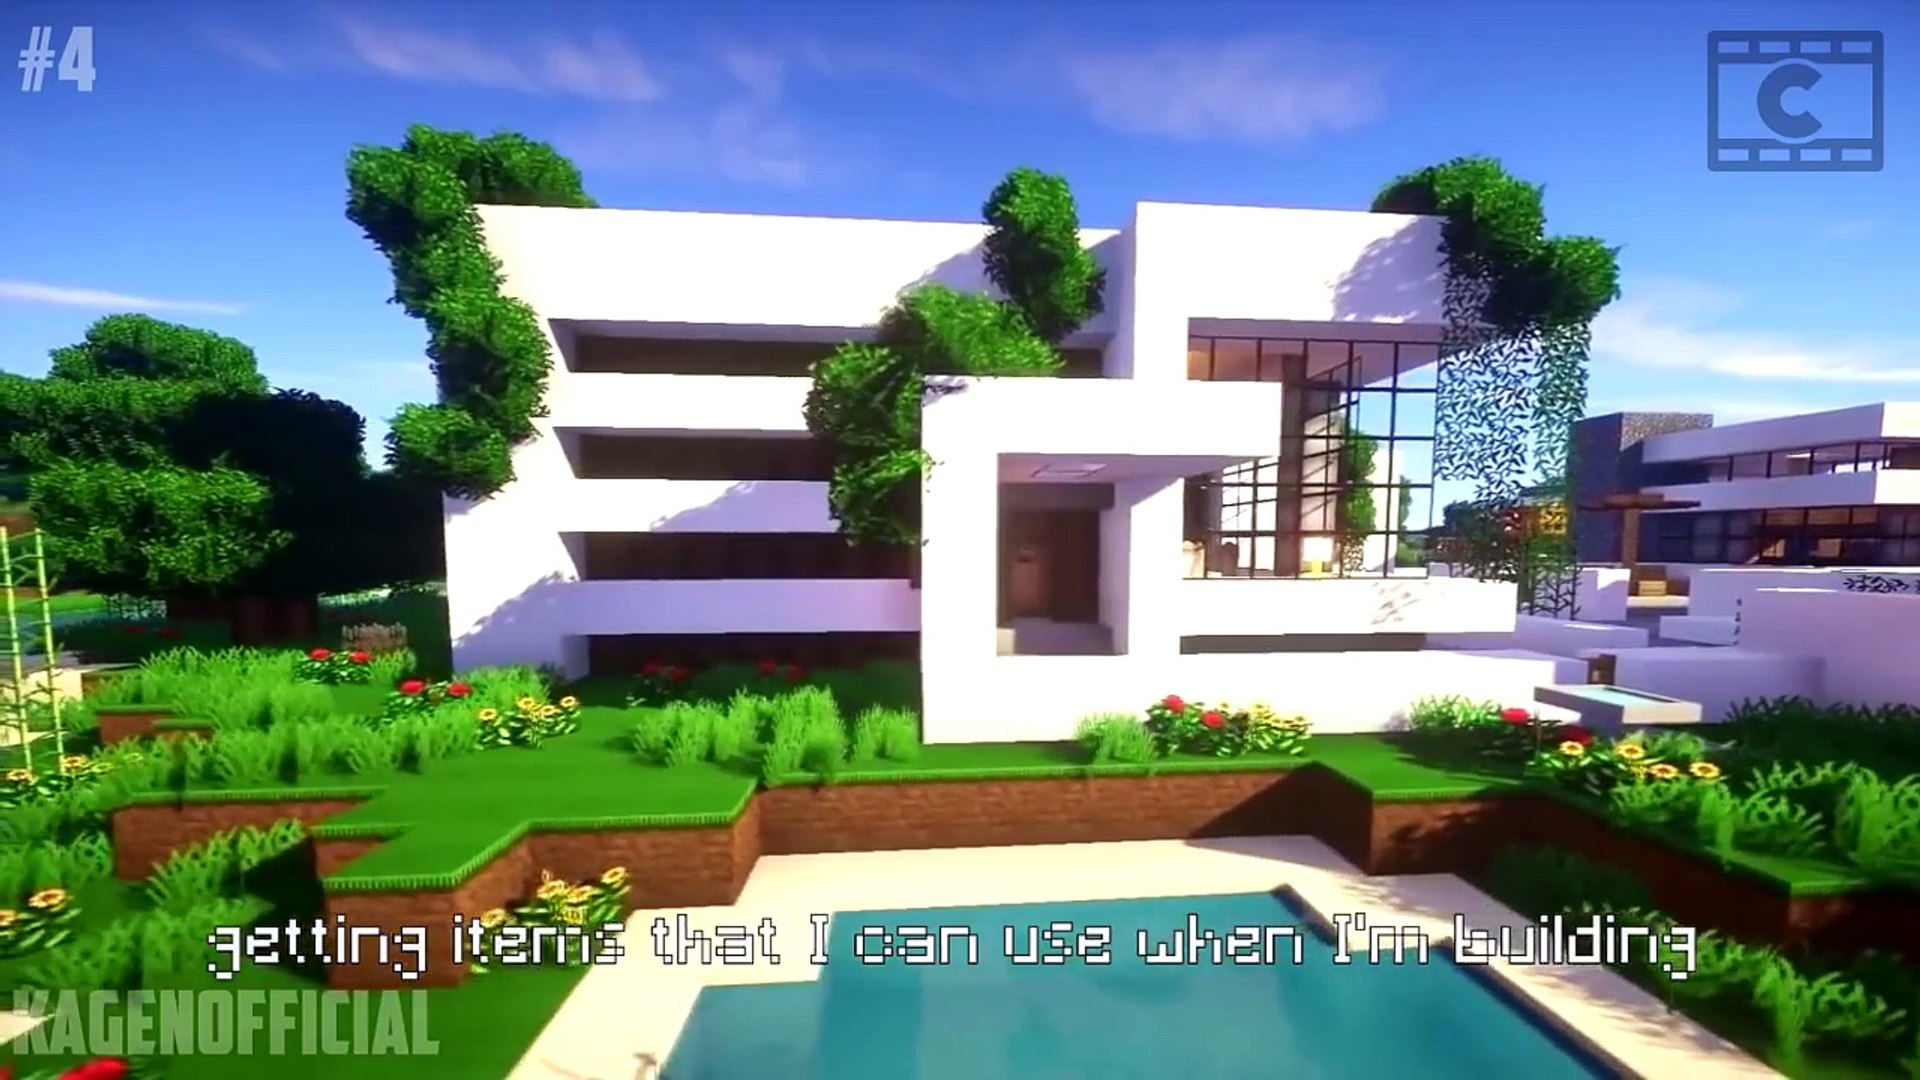 Top 5 Minecraft Song and Minecraft Animation - Best Minecraft Songs and Minecraft Animations 2016